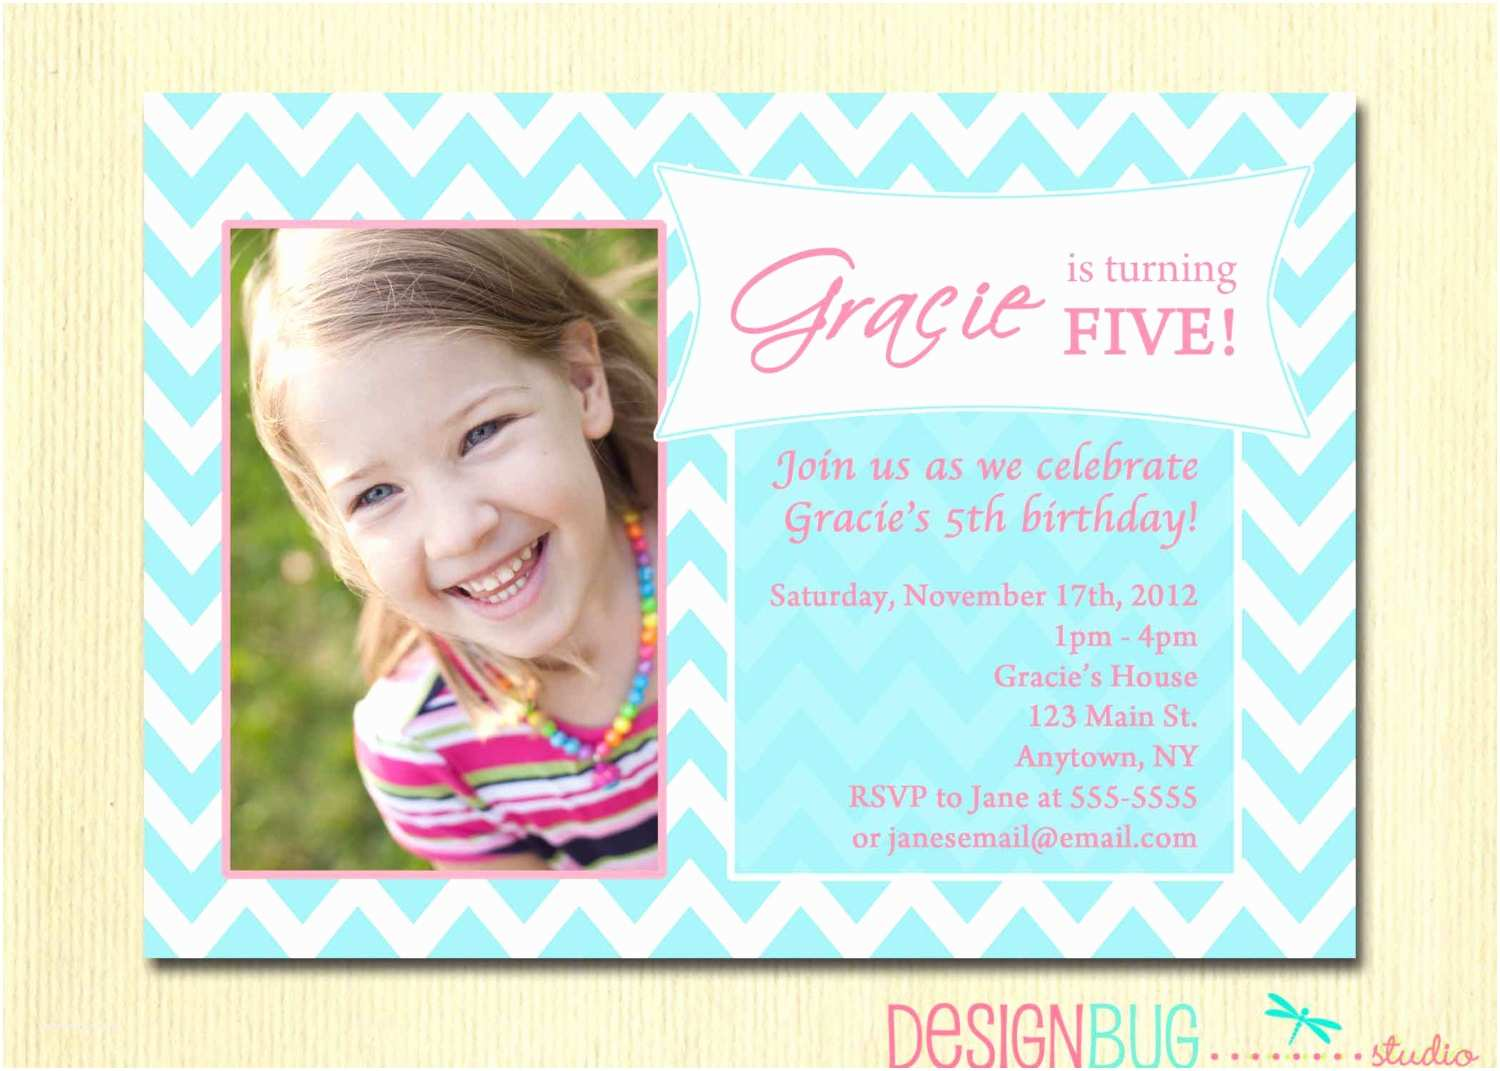 Birthday Party Invitation Message 3 Year Old Birthday Party Invitation Wording